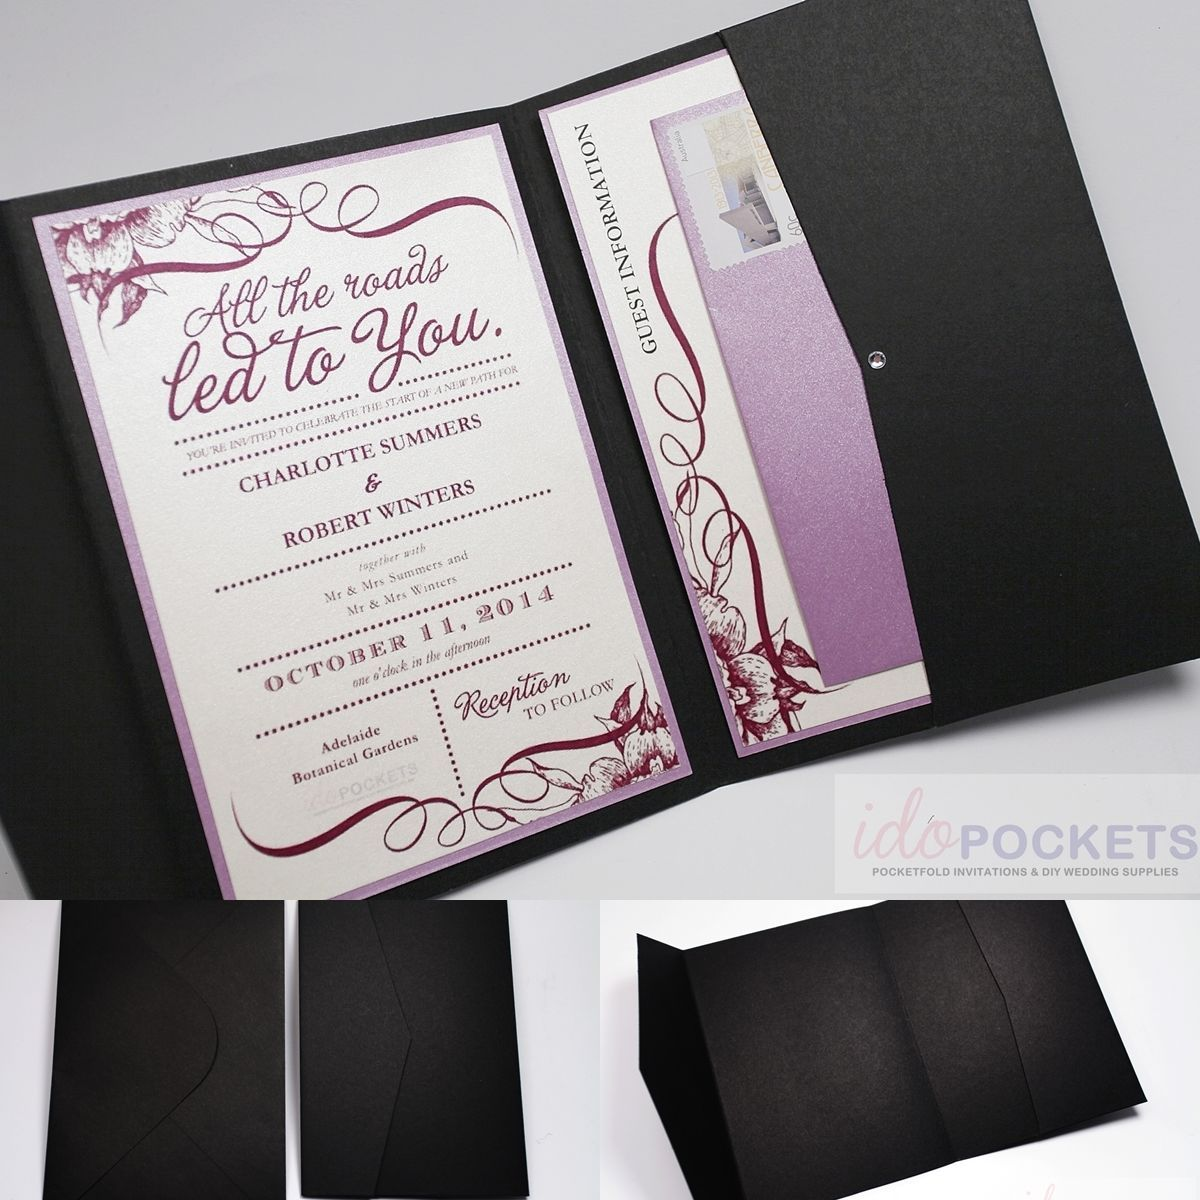 Matte black rectangle wedding invitation diy envelopes pocket ...